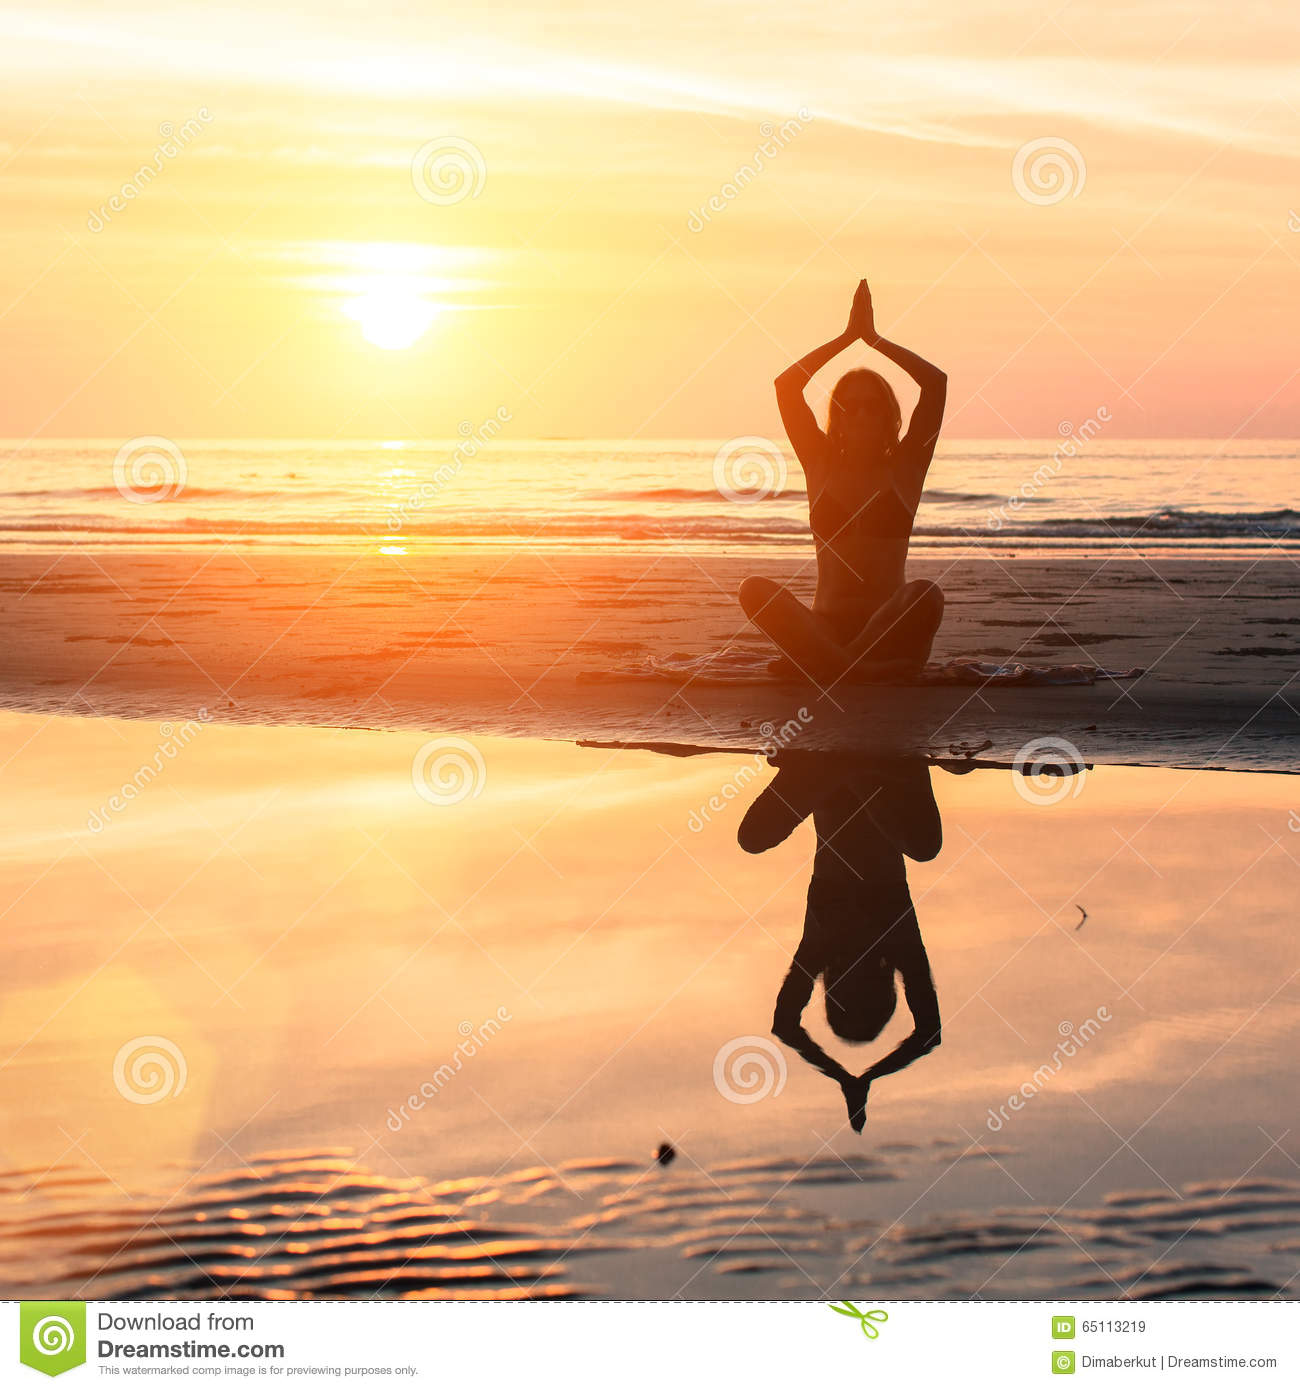 Yoga And Healthy Lifestyle Stock Image Image Of Meditative Peaceful 65113219